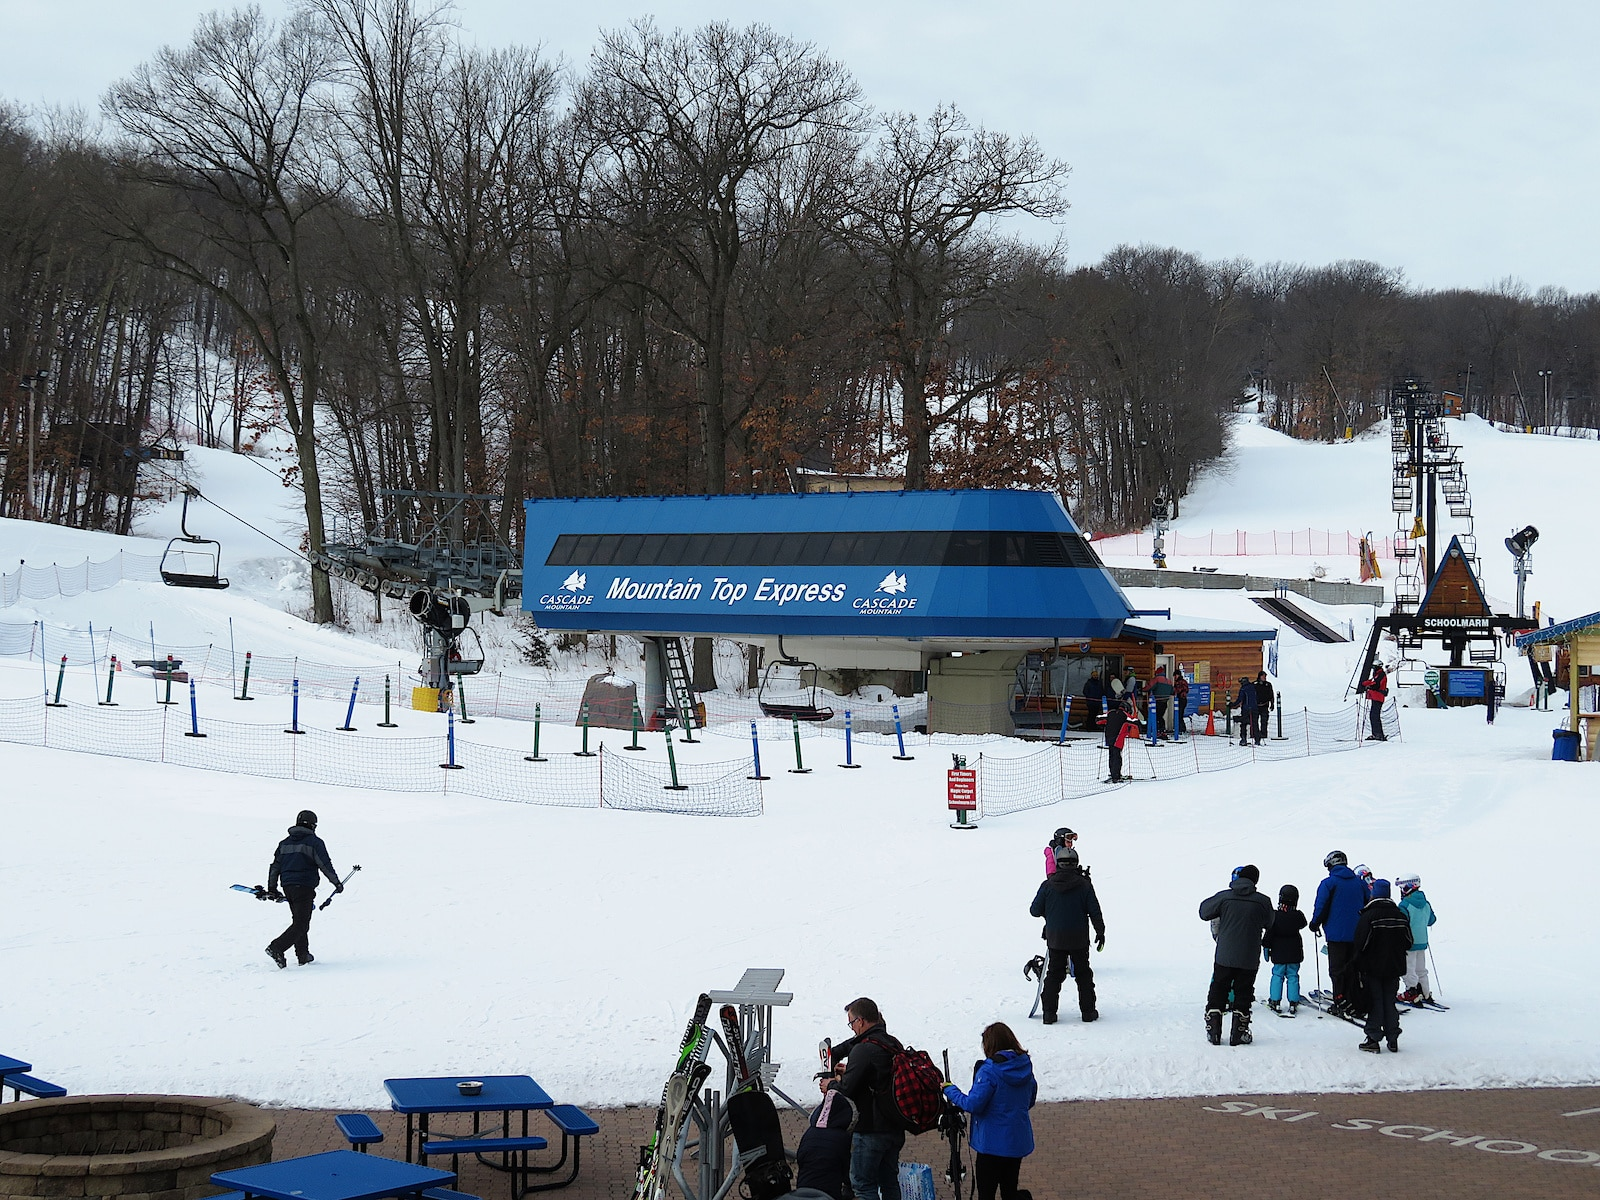 Image of the Mountain Top Express lift at Cascade Mountain in Wisconsin